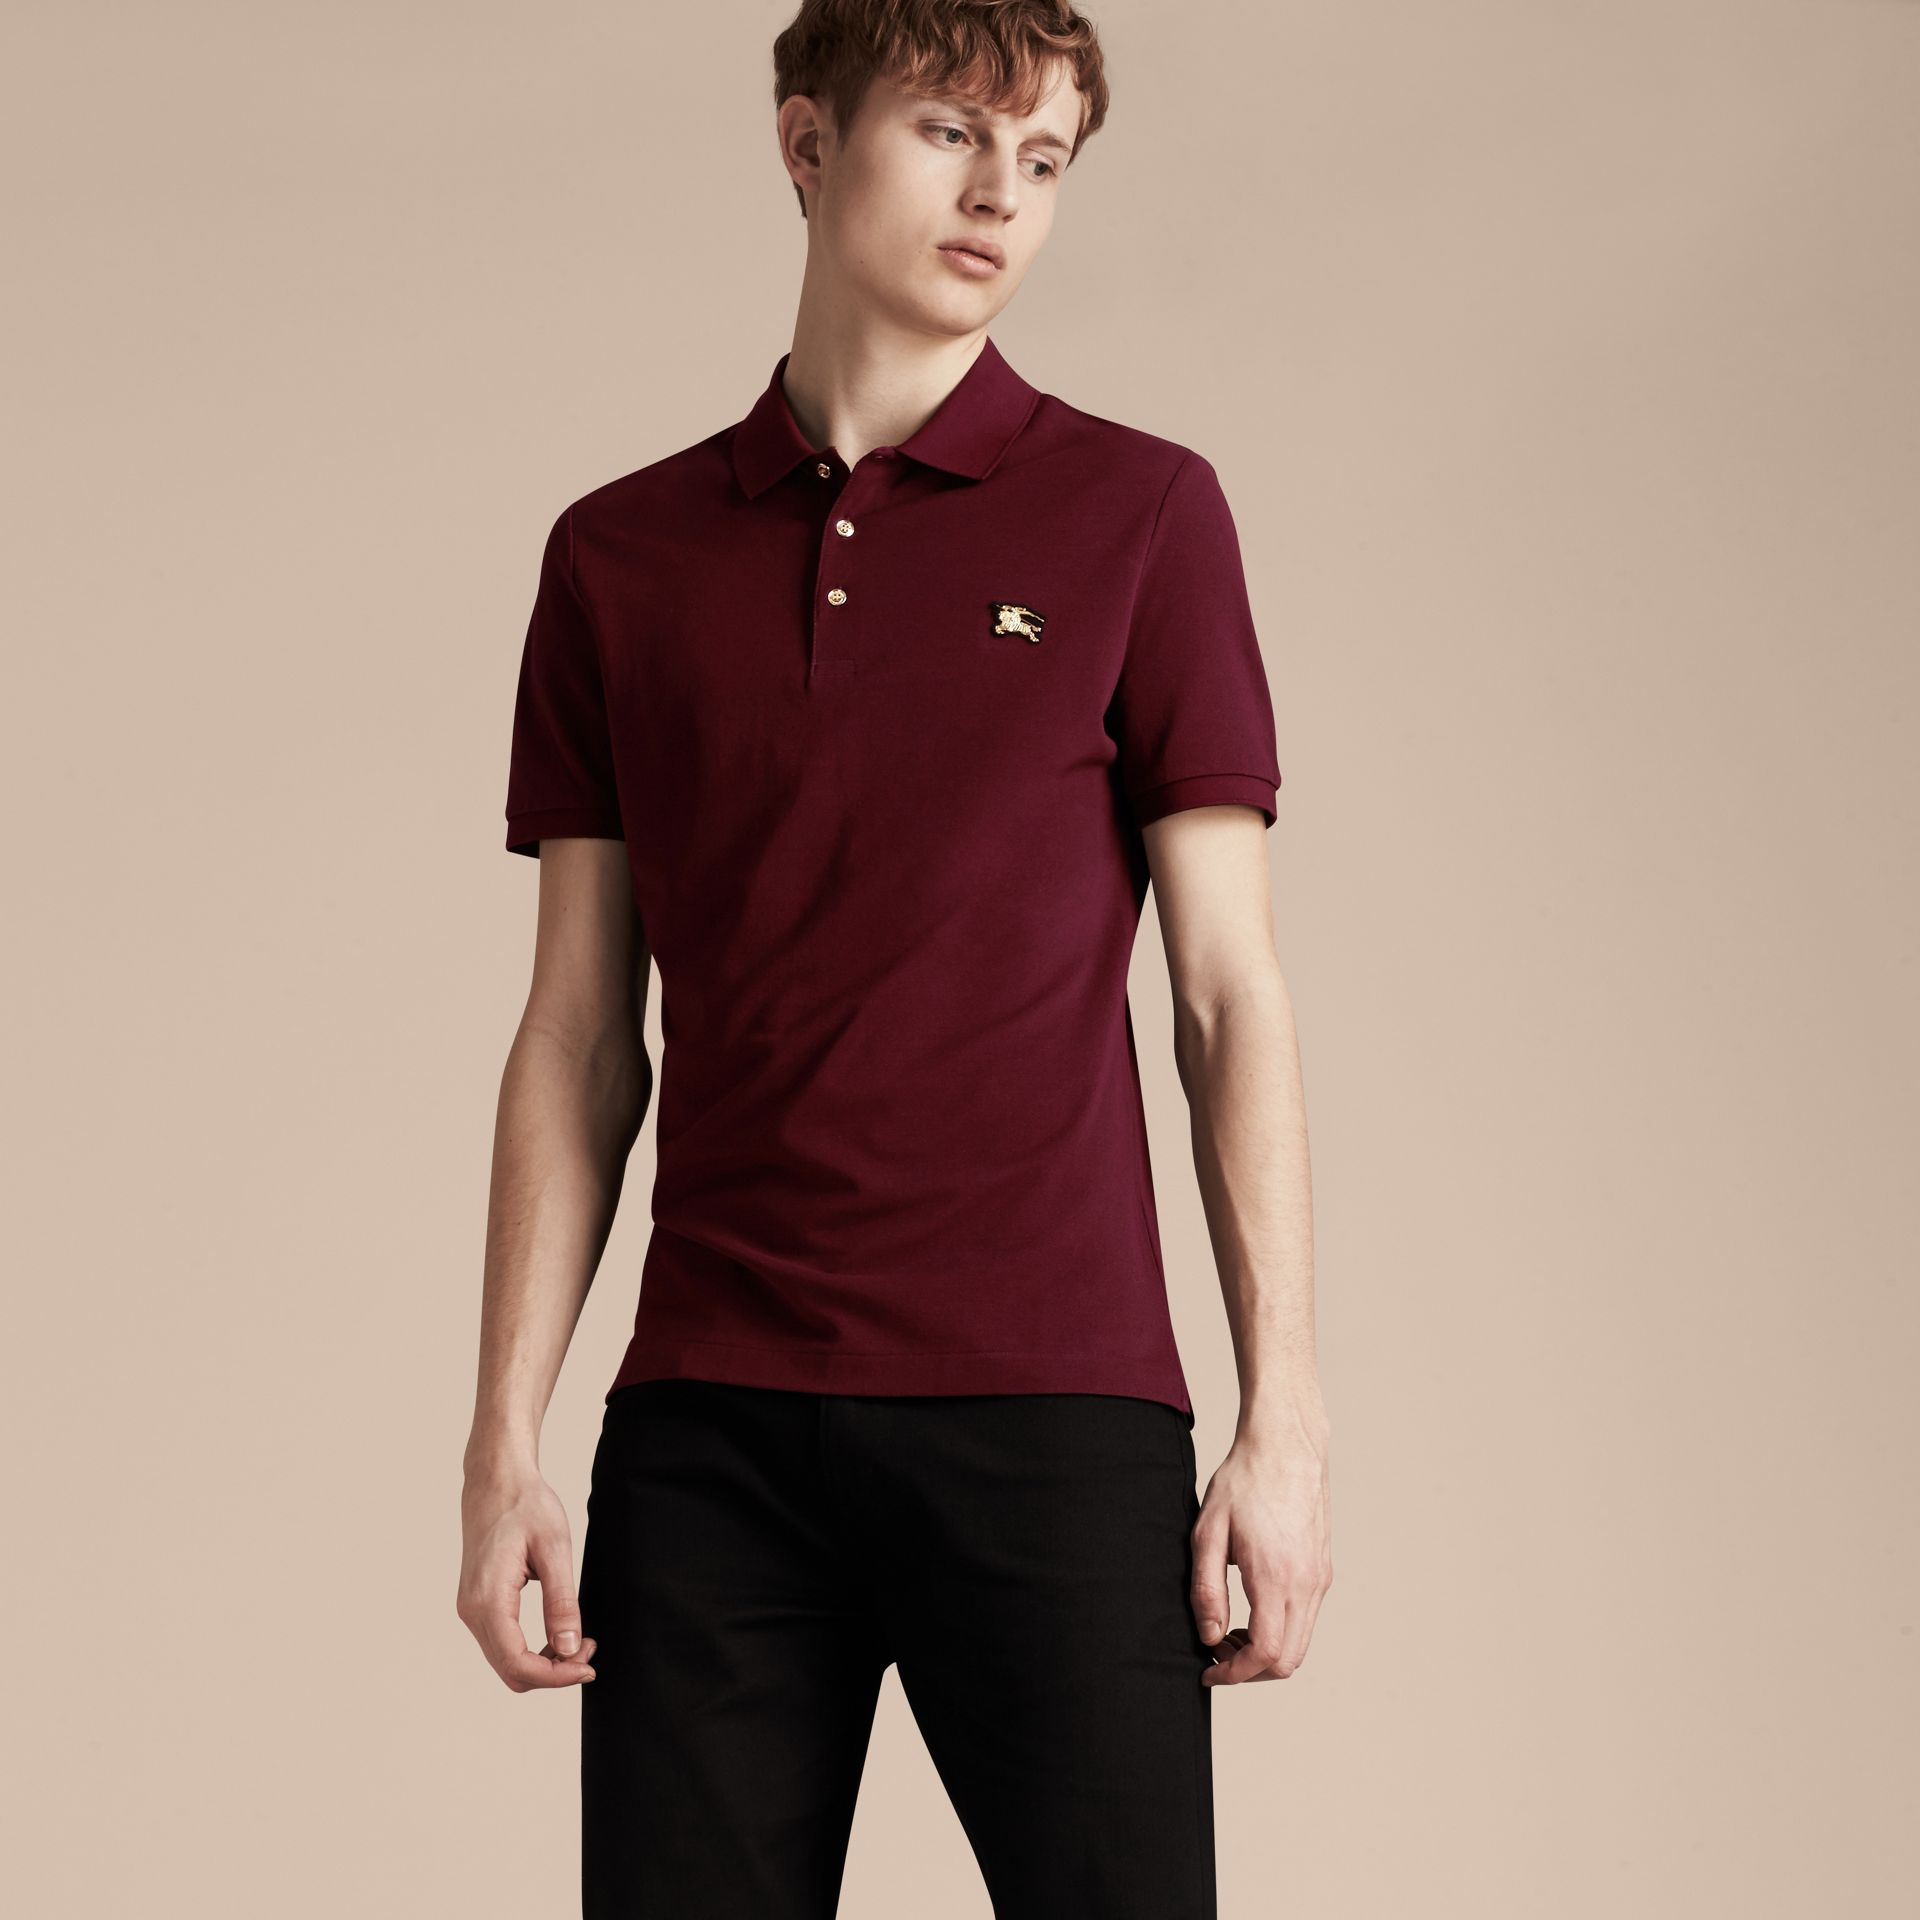 Cotton Piqué Polo Shirt in Burgundy Red - Men | Burberry - gallery image 6